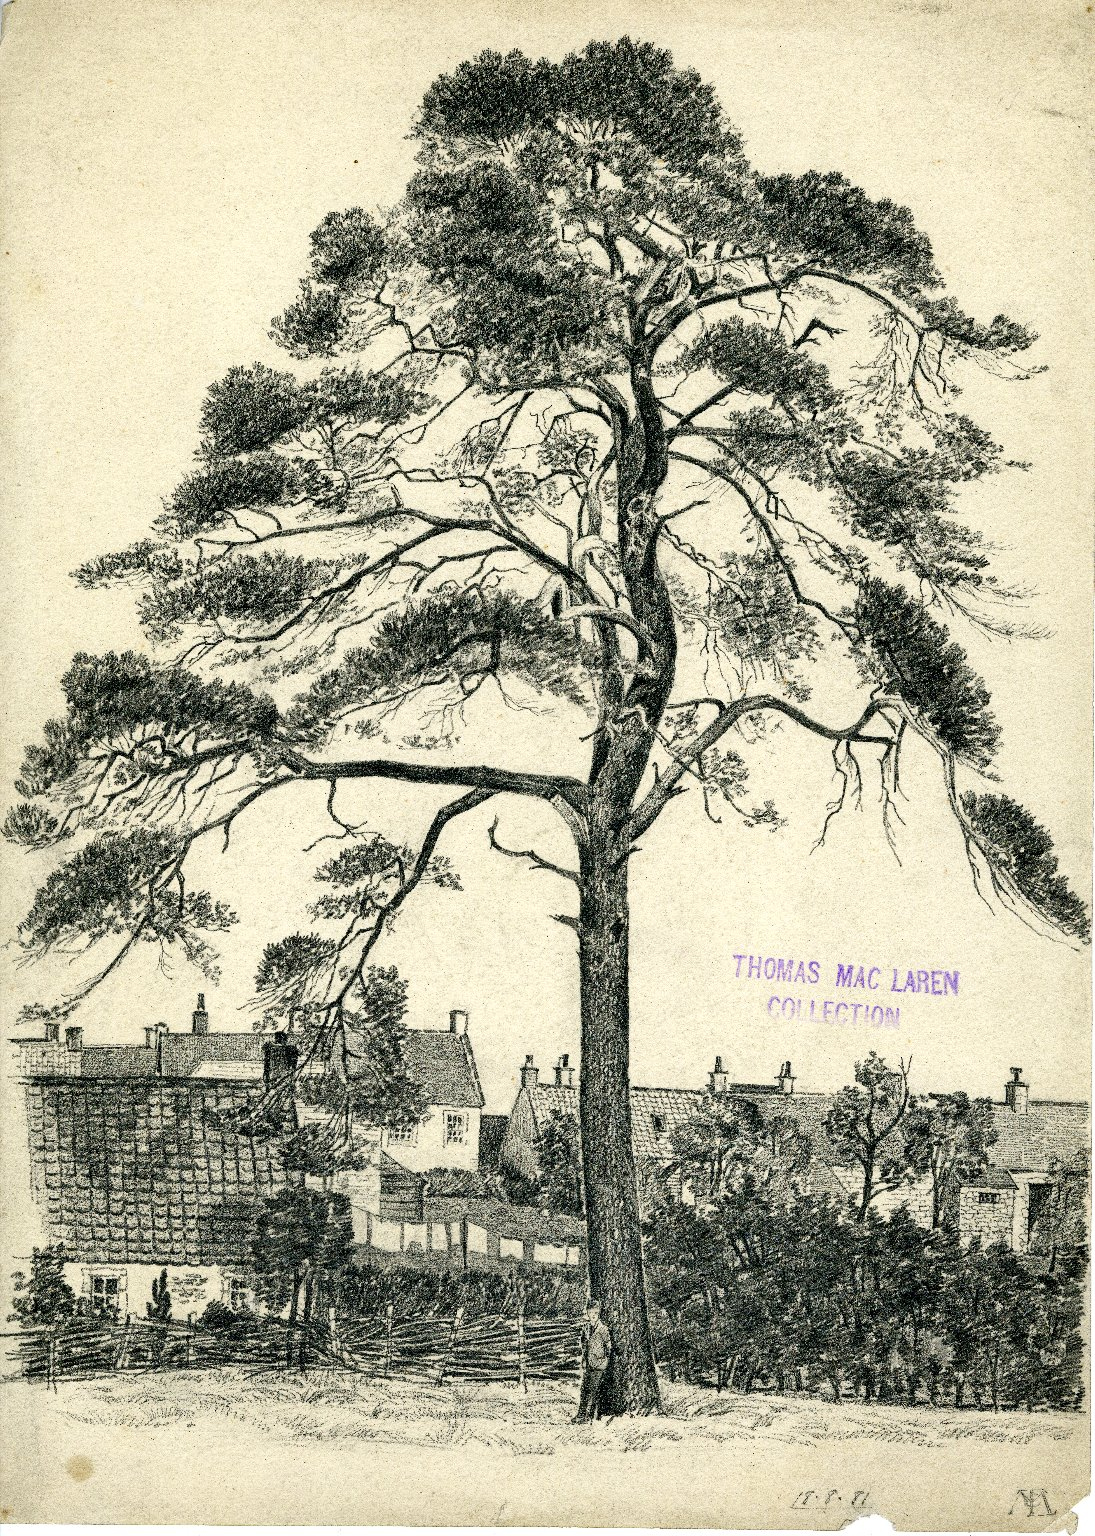 Boy leaning against tree with houses in background